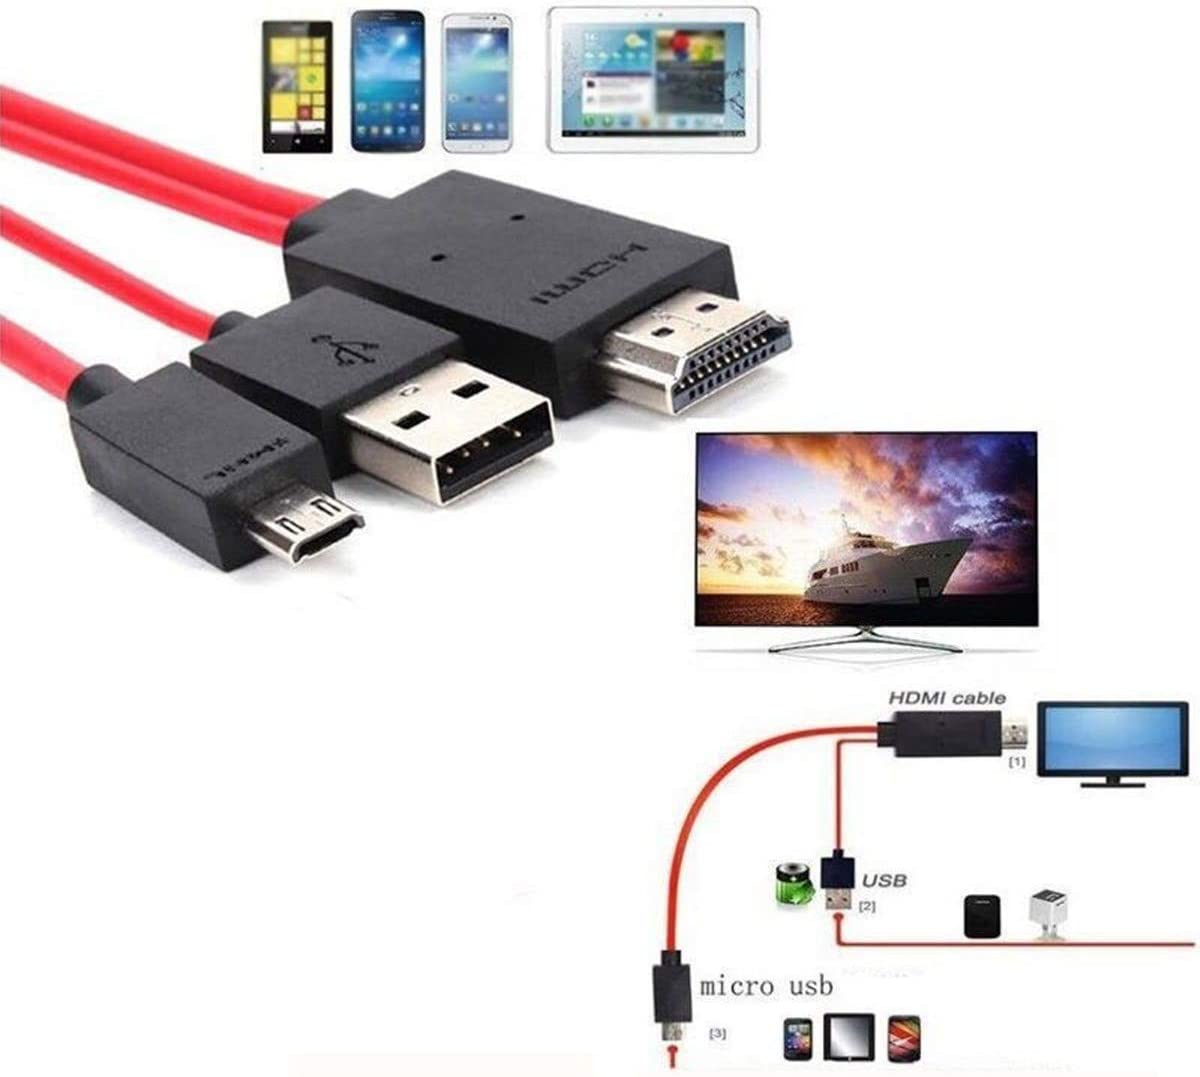 S4 Note 3 S3 Note 2 red look see Phone to Tv Cable MHL Micro USB to HDMI 1080P HD TV Cable Adapter for Samsung Galaxy S5